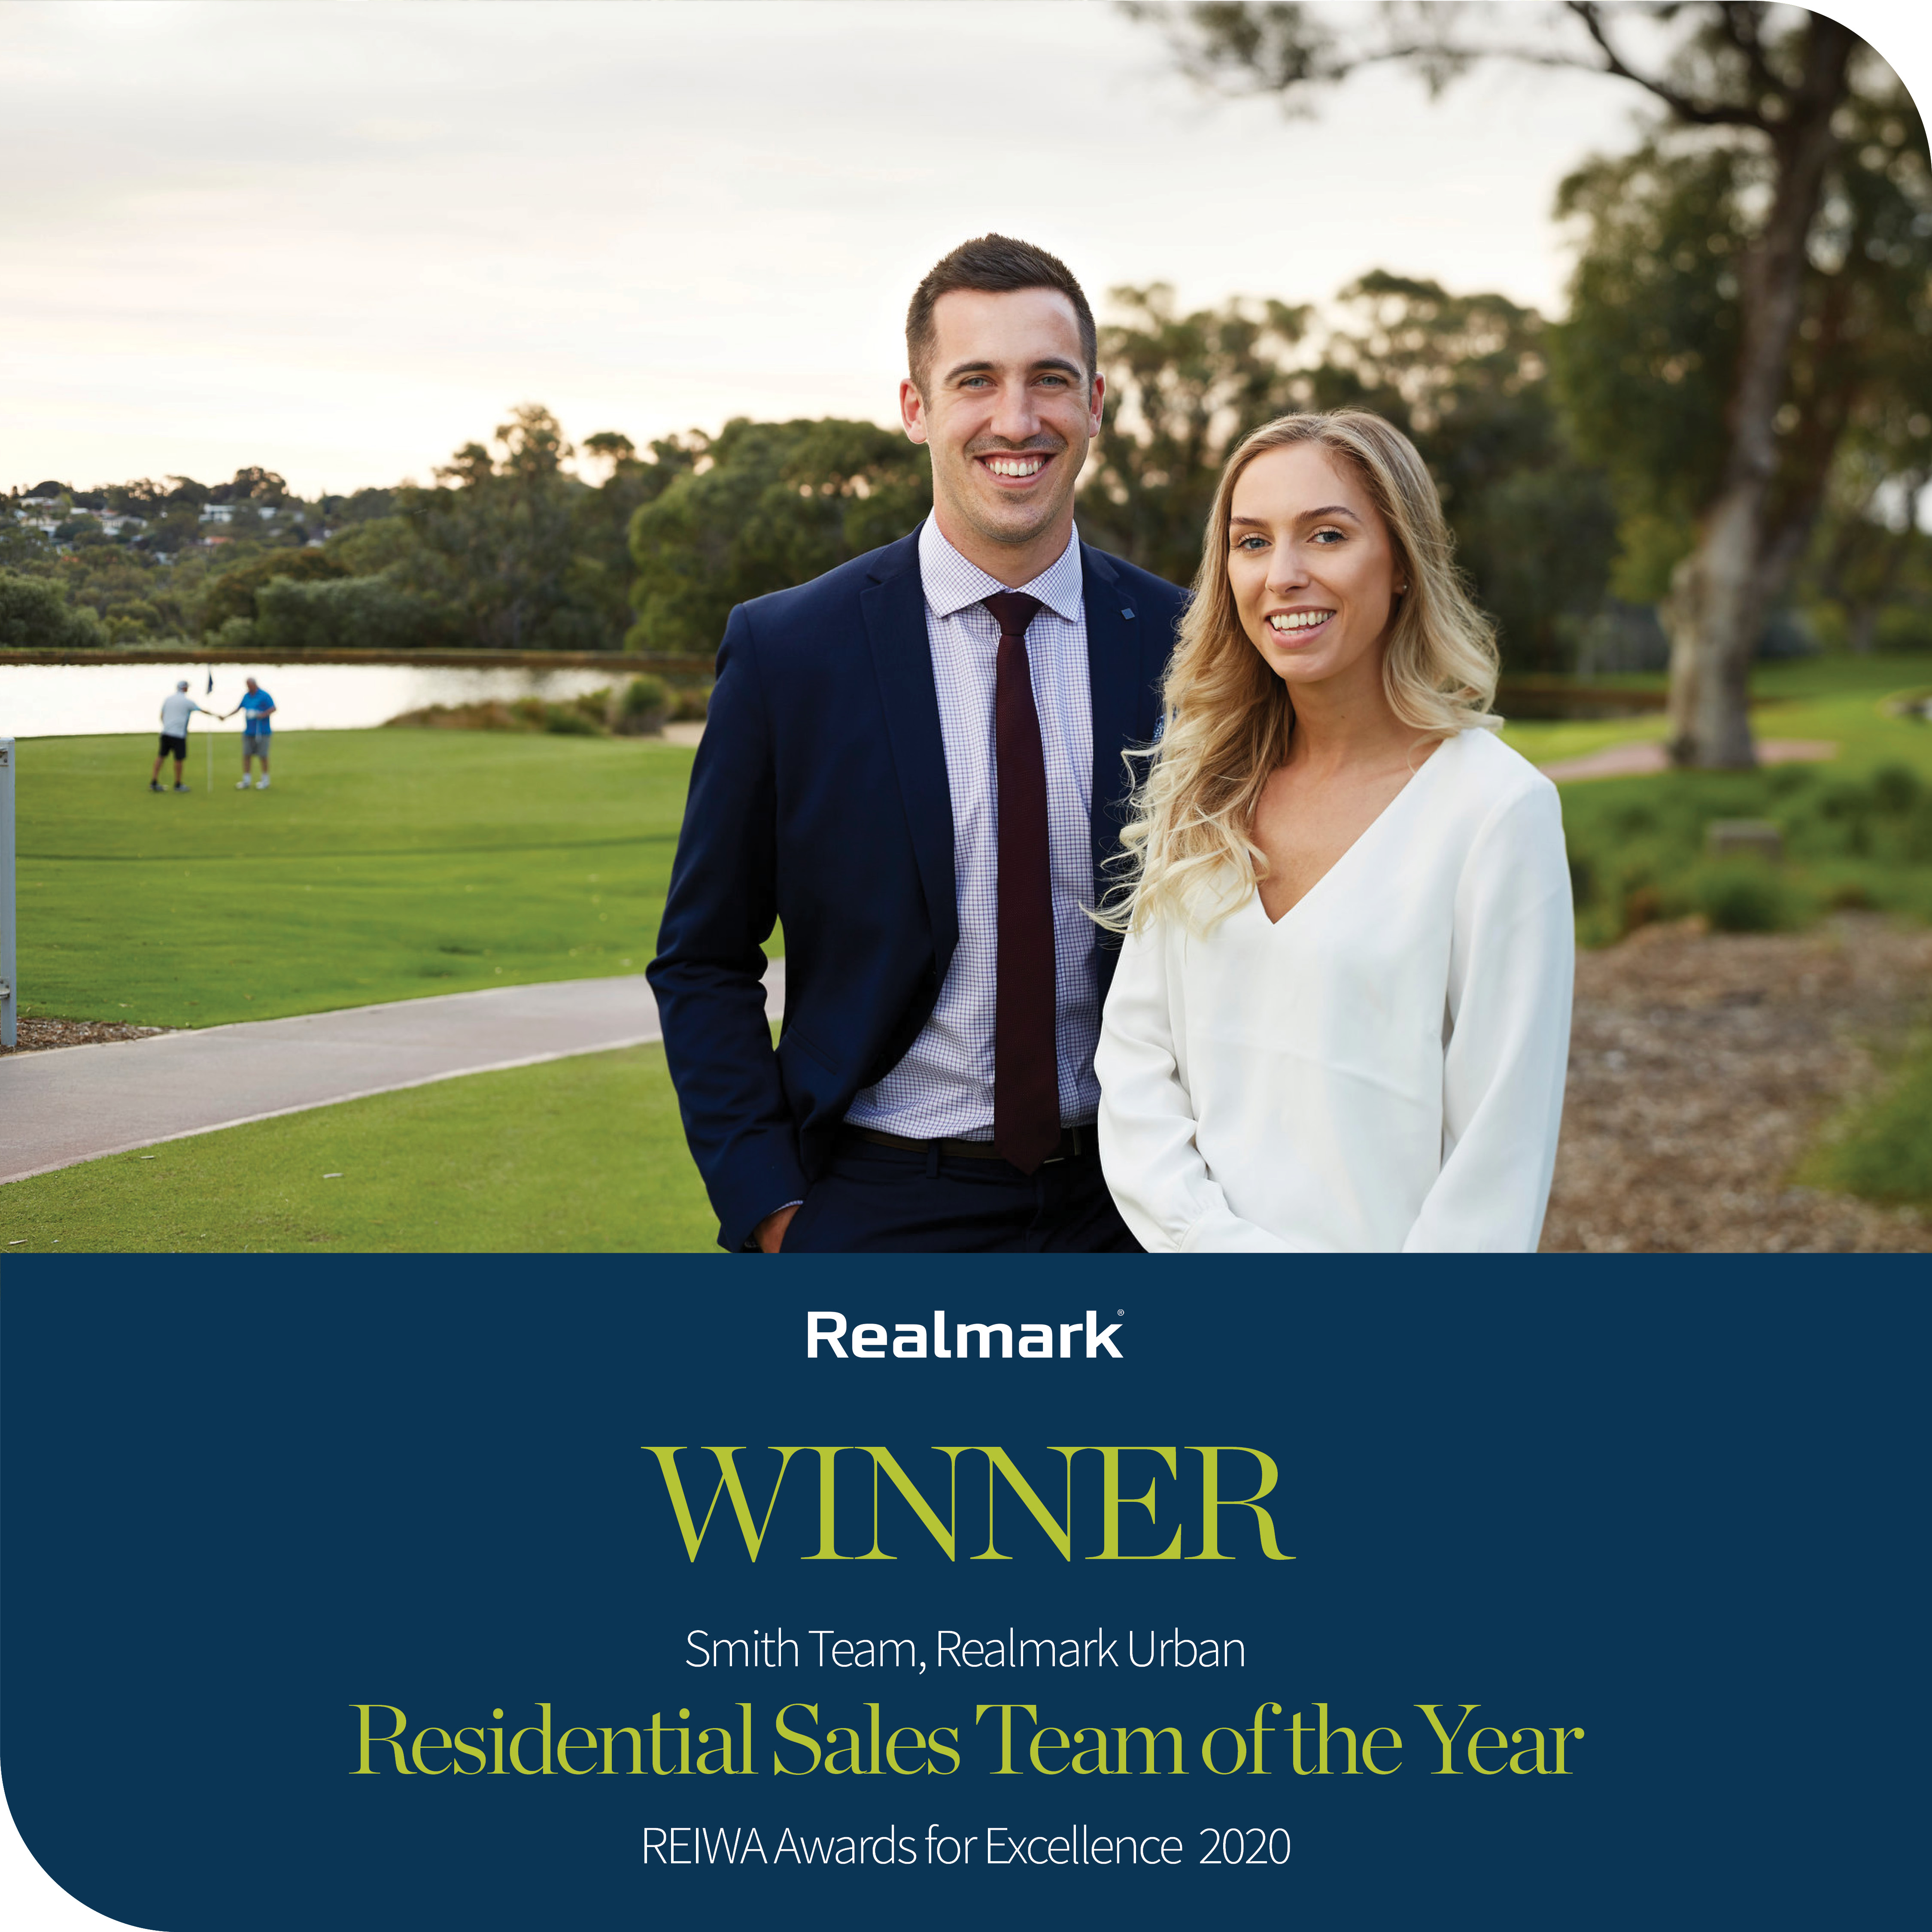 Residential Sales Team of The Year – REIWA Awards for Excellence 2020